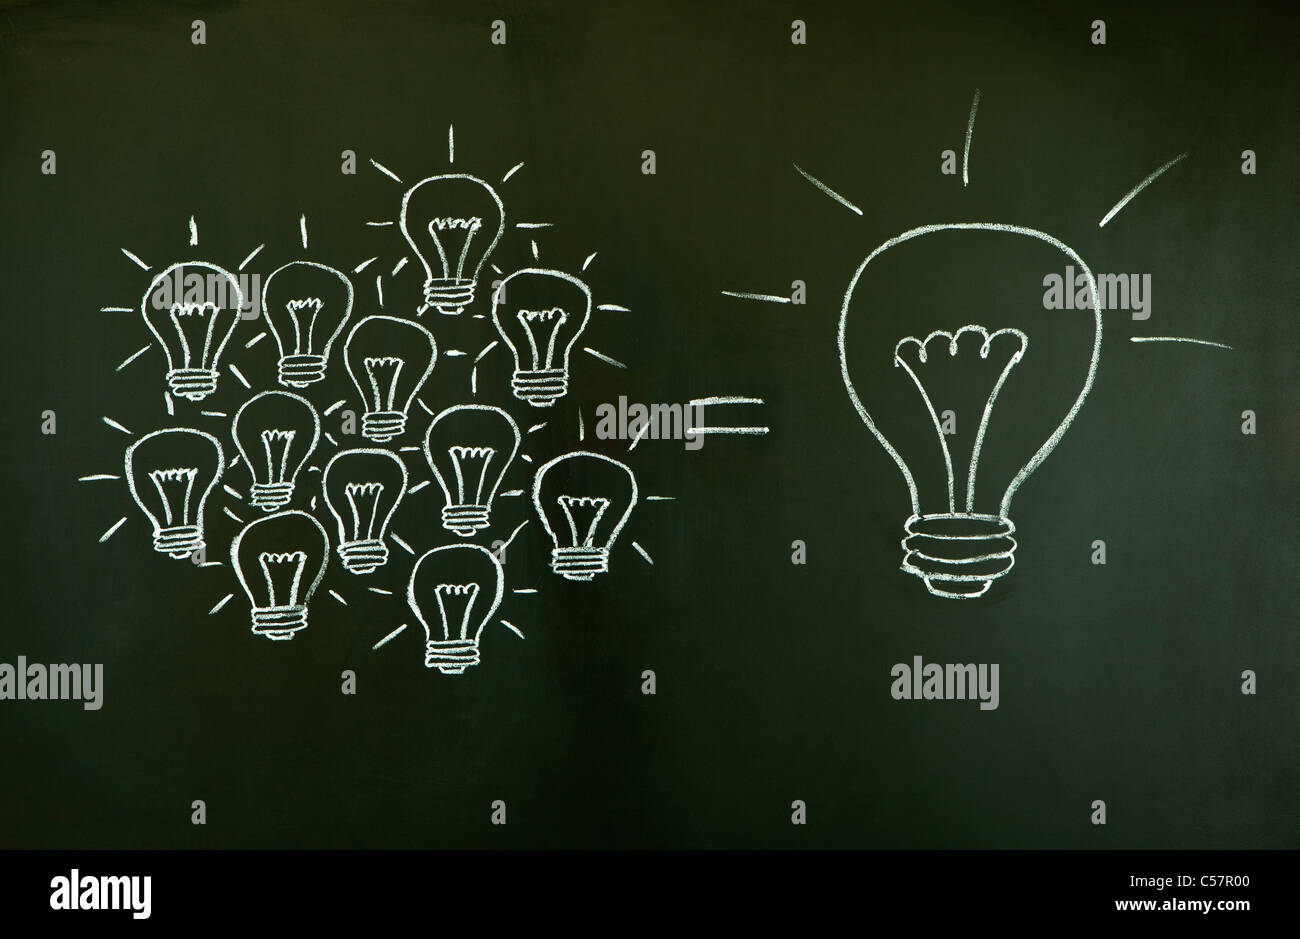 Many small ideas equal a big one, illustrated with chalk drawn light bulbs on a blackboard. - Stock Image